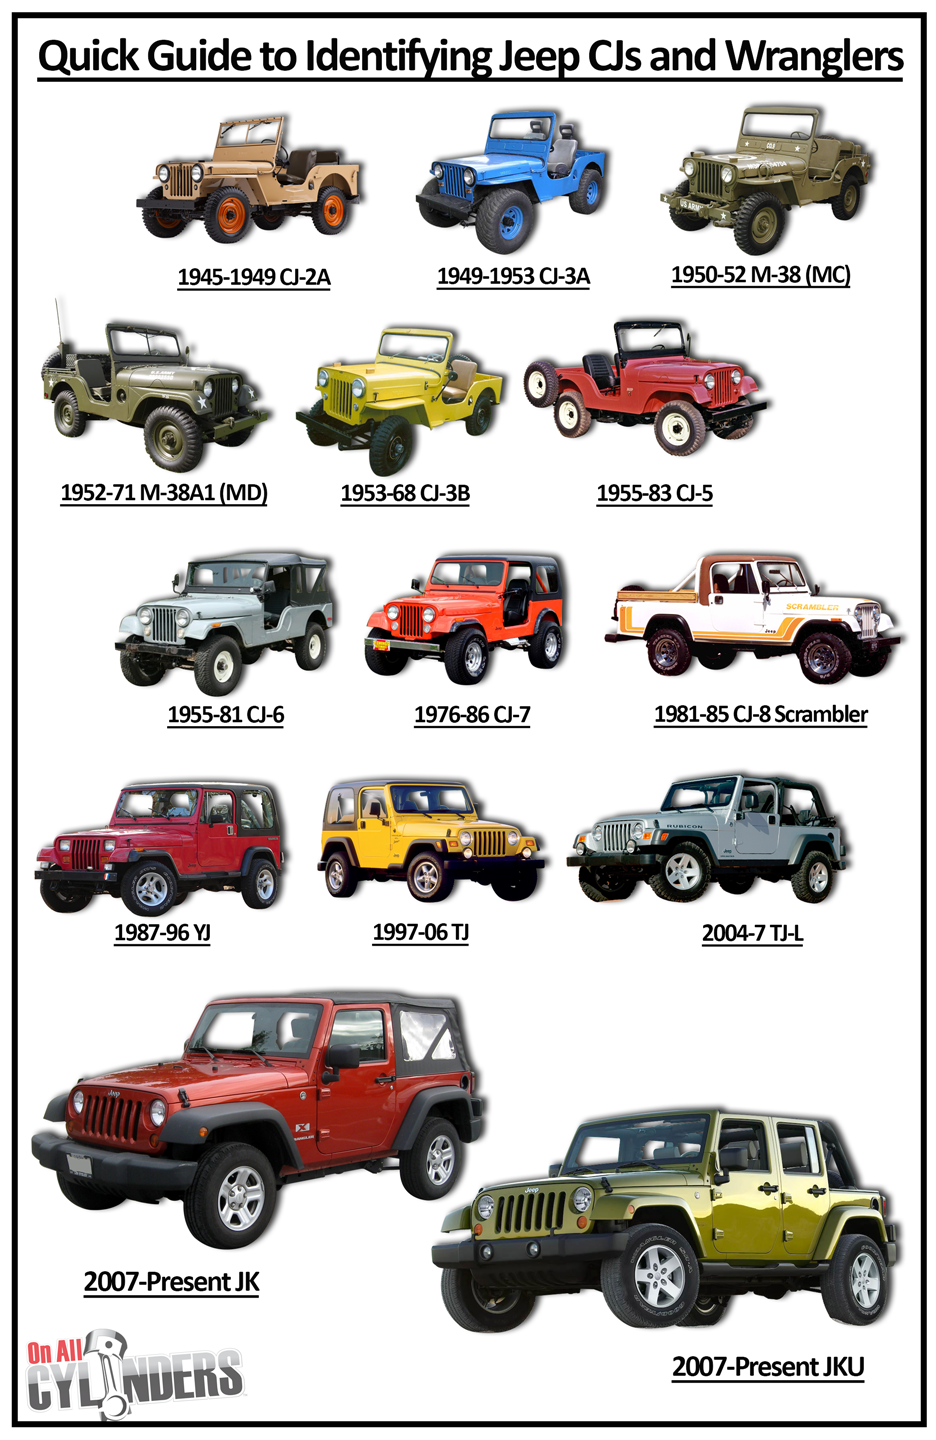 A Brief History of Jeep CJ and Wrangler Vehicles Civilian Jeep CJs CJ-2A  (1945-49) The first civilian Jeep vehicle was built to replace farm horses  on ...